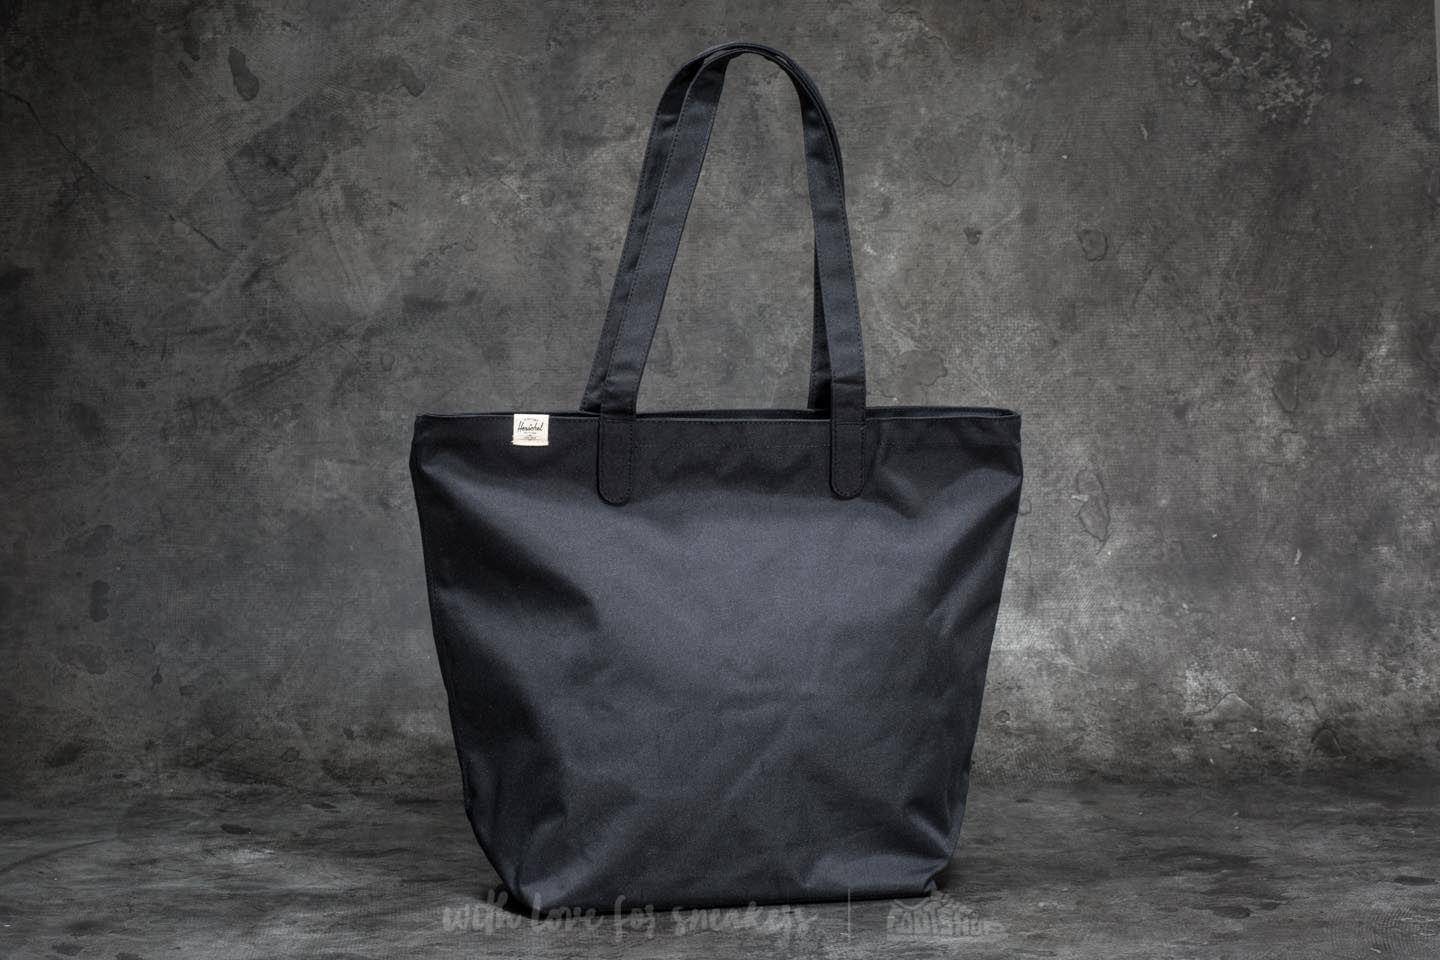 59f5b2c47b6 Lyst - Herschel Supply Co. Mica Tote Bag Black in Black